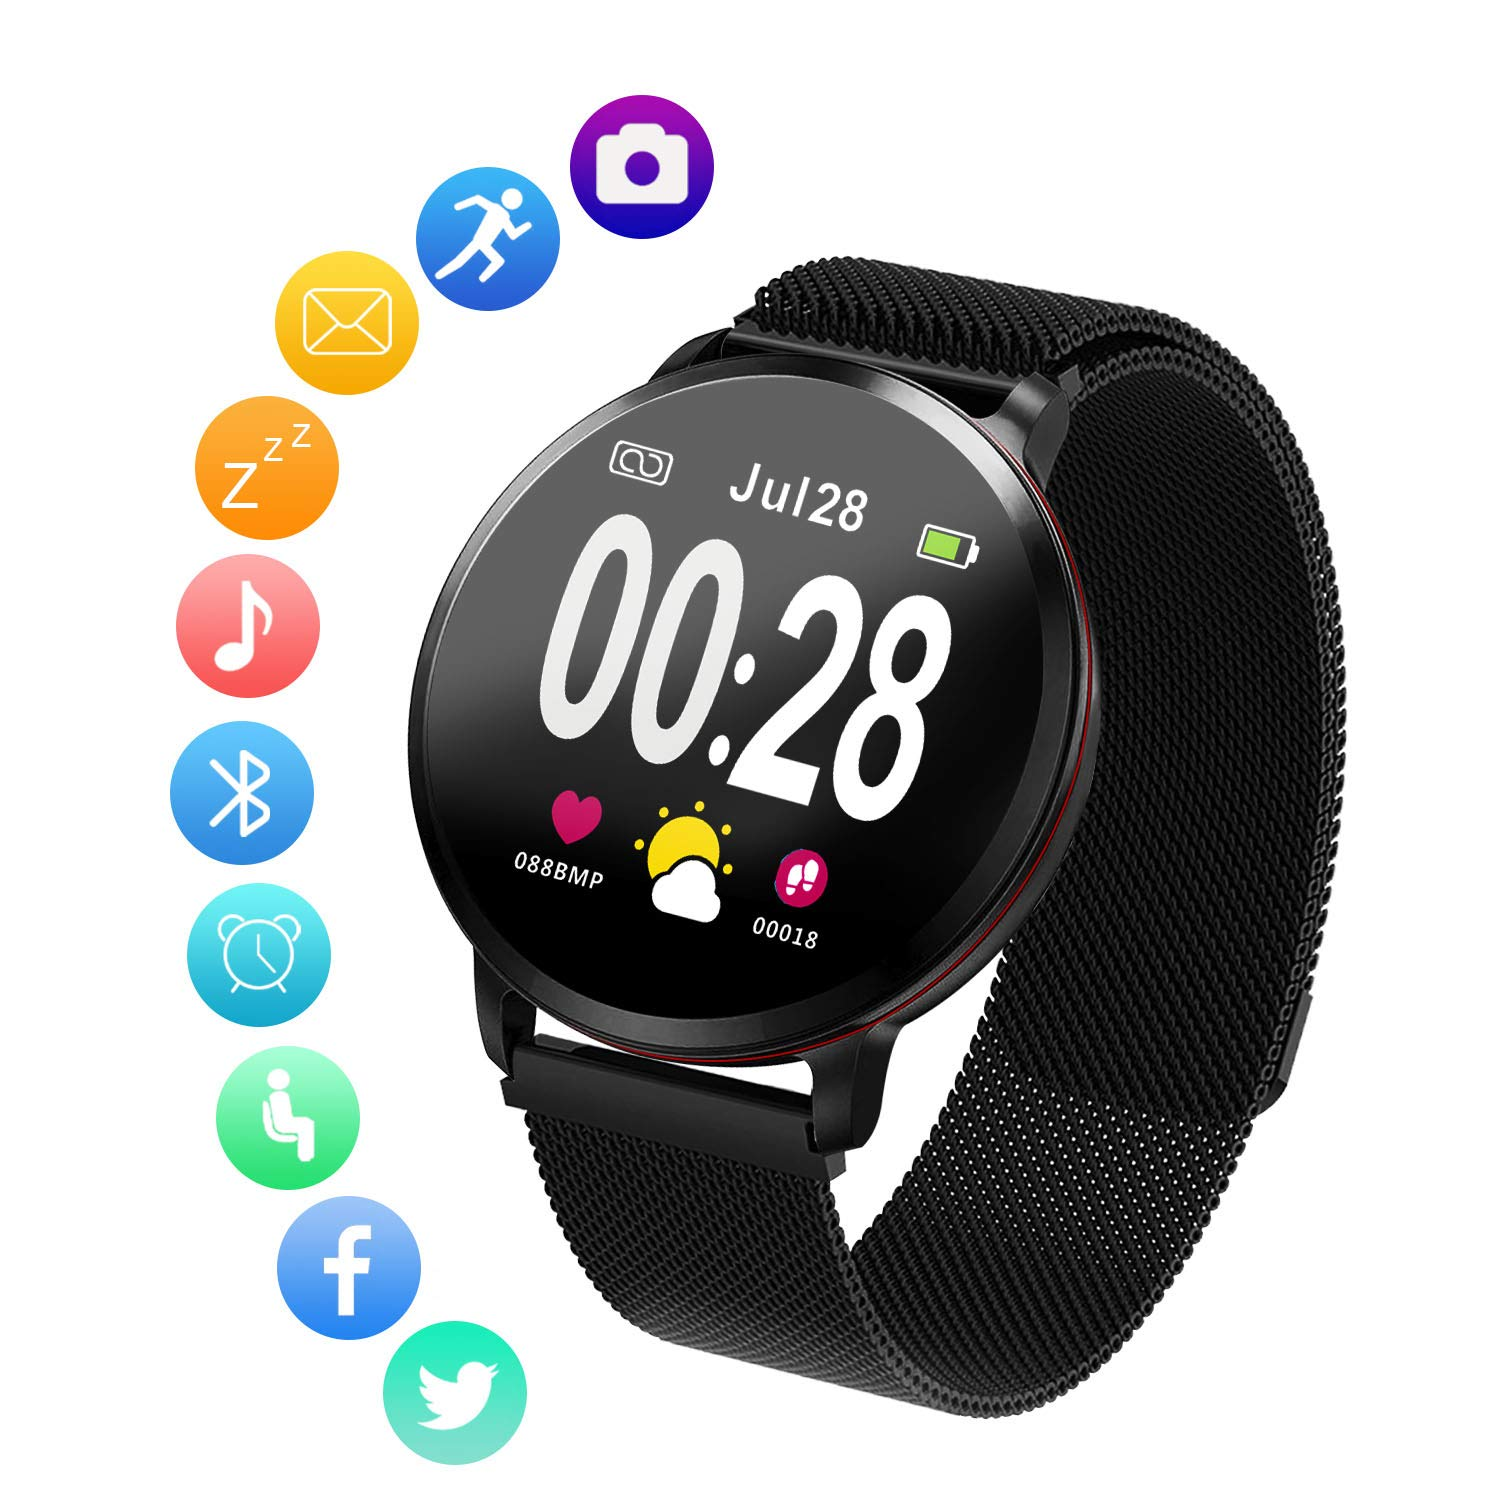 Amerzam Smart Watch for Android iOS Phones,Activity Fitness Tracker Waterproof with Heart Rate Monitor Sleep Tracker Step Counter for Women and Men by Amerzam